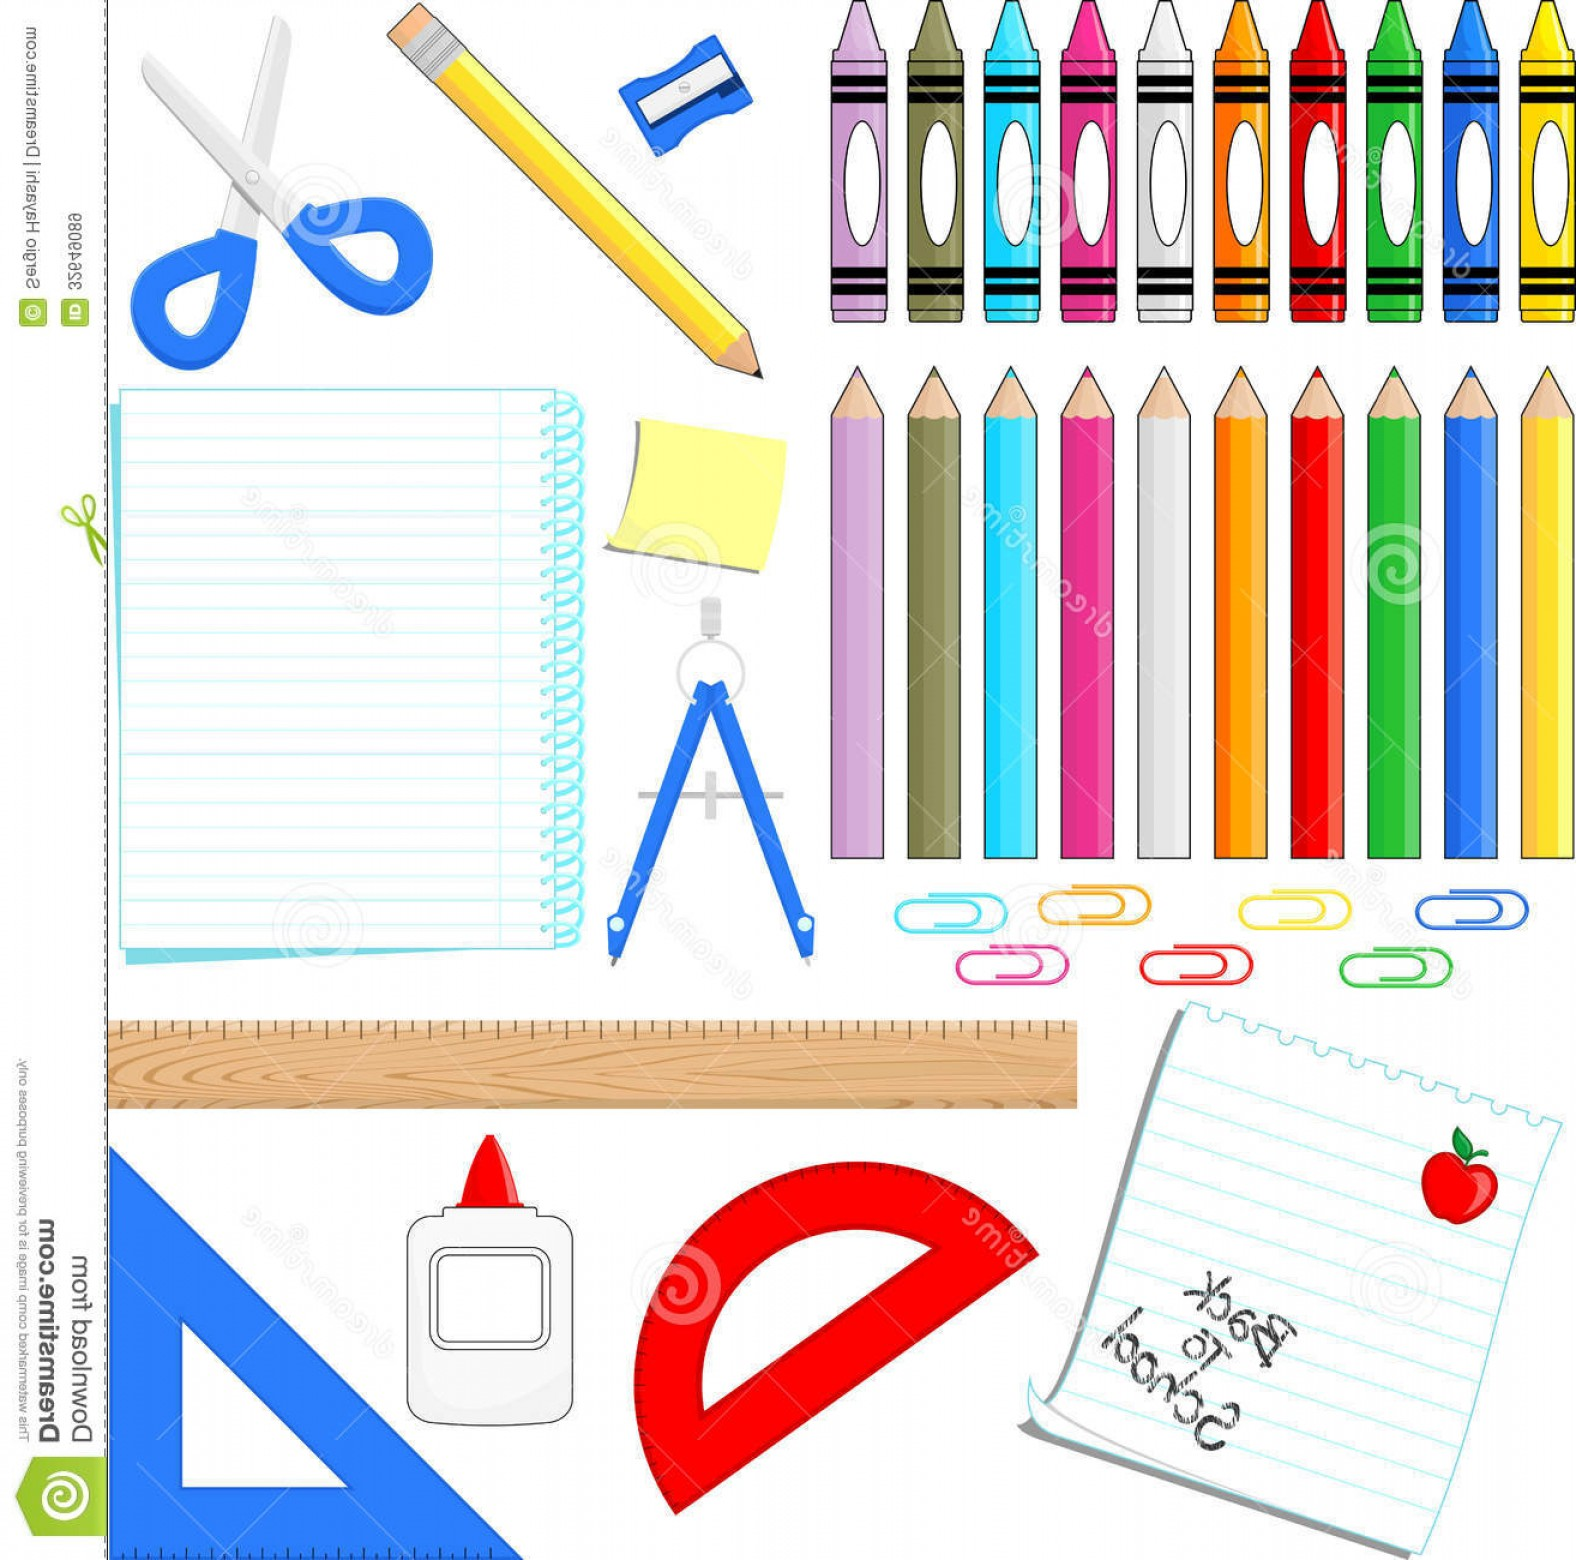 Individual School Supplies Vector: Royalty Free Stock Images School Supplies Vector Clip Art White Background Format Very Easy To Edit Individual Objects Image